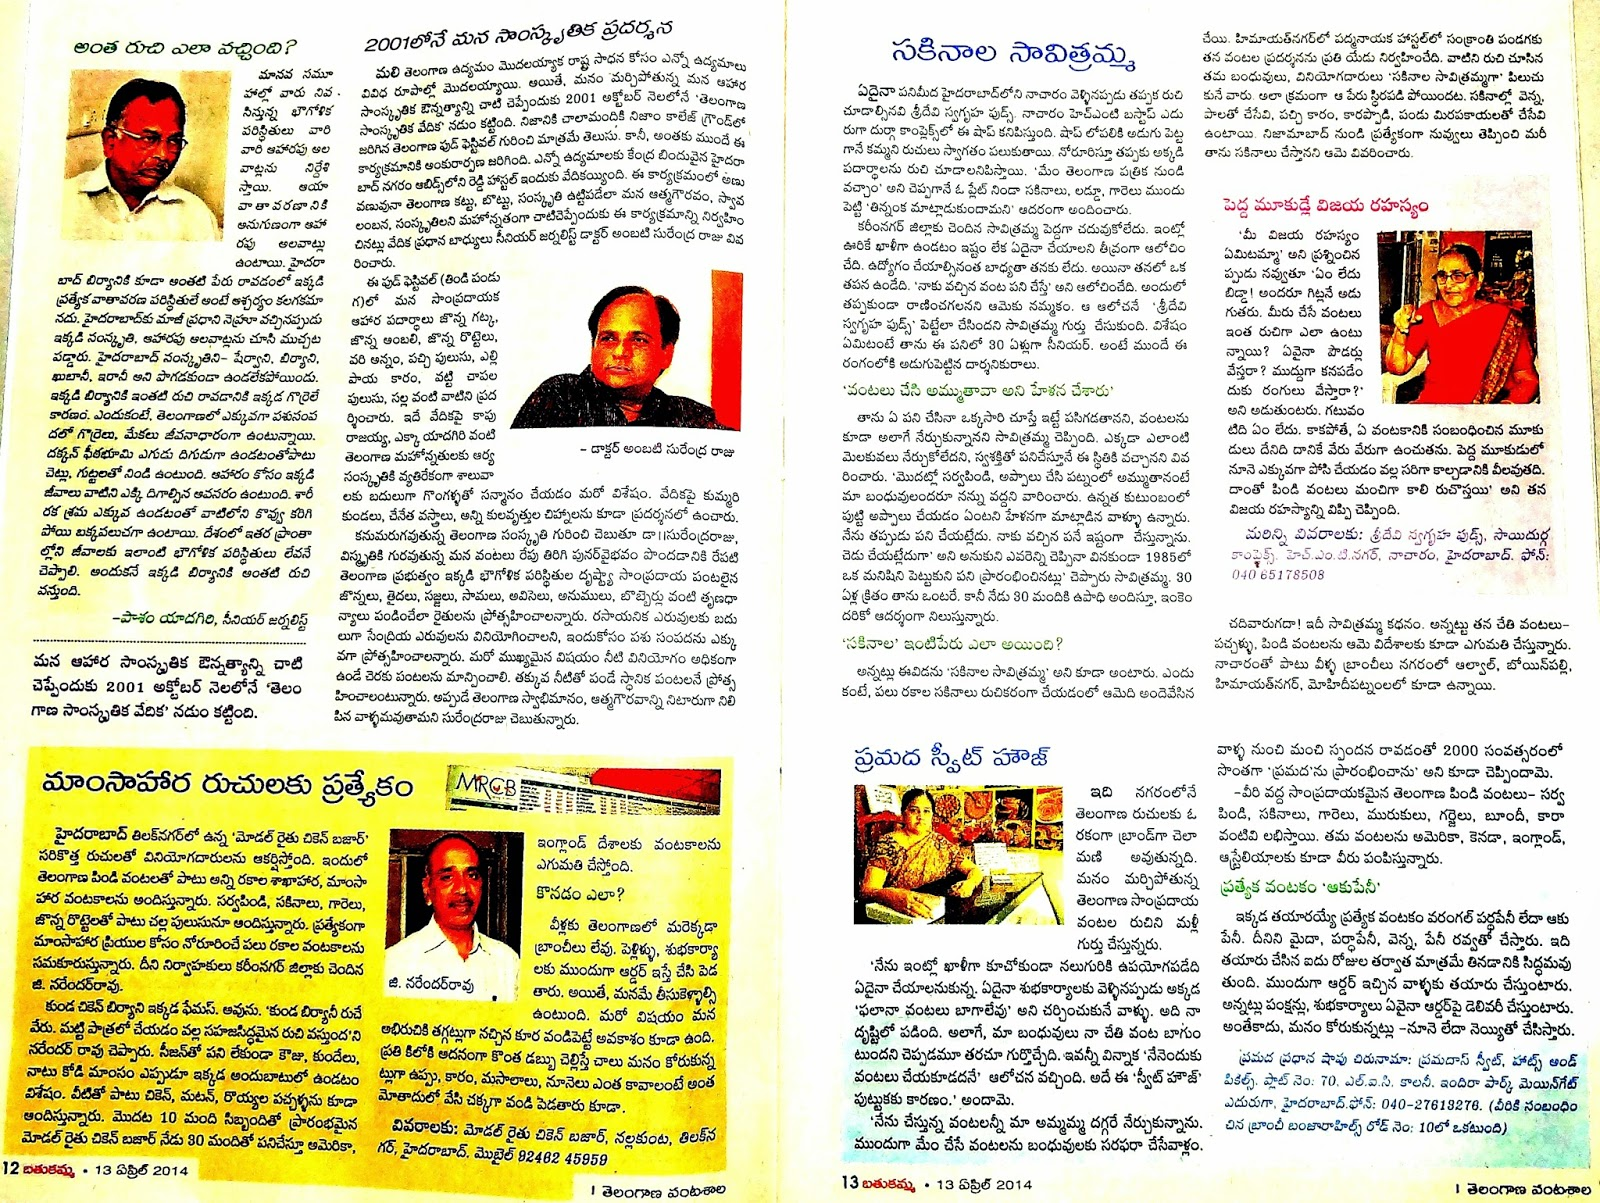 Learning tamil through telugu books download. Bean-handled. Gq.